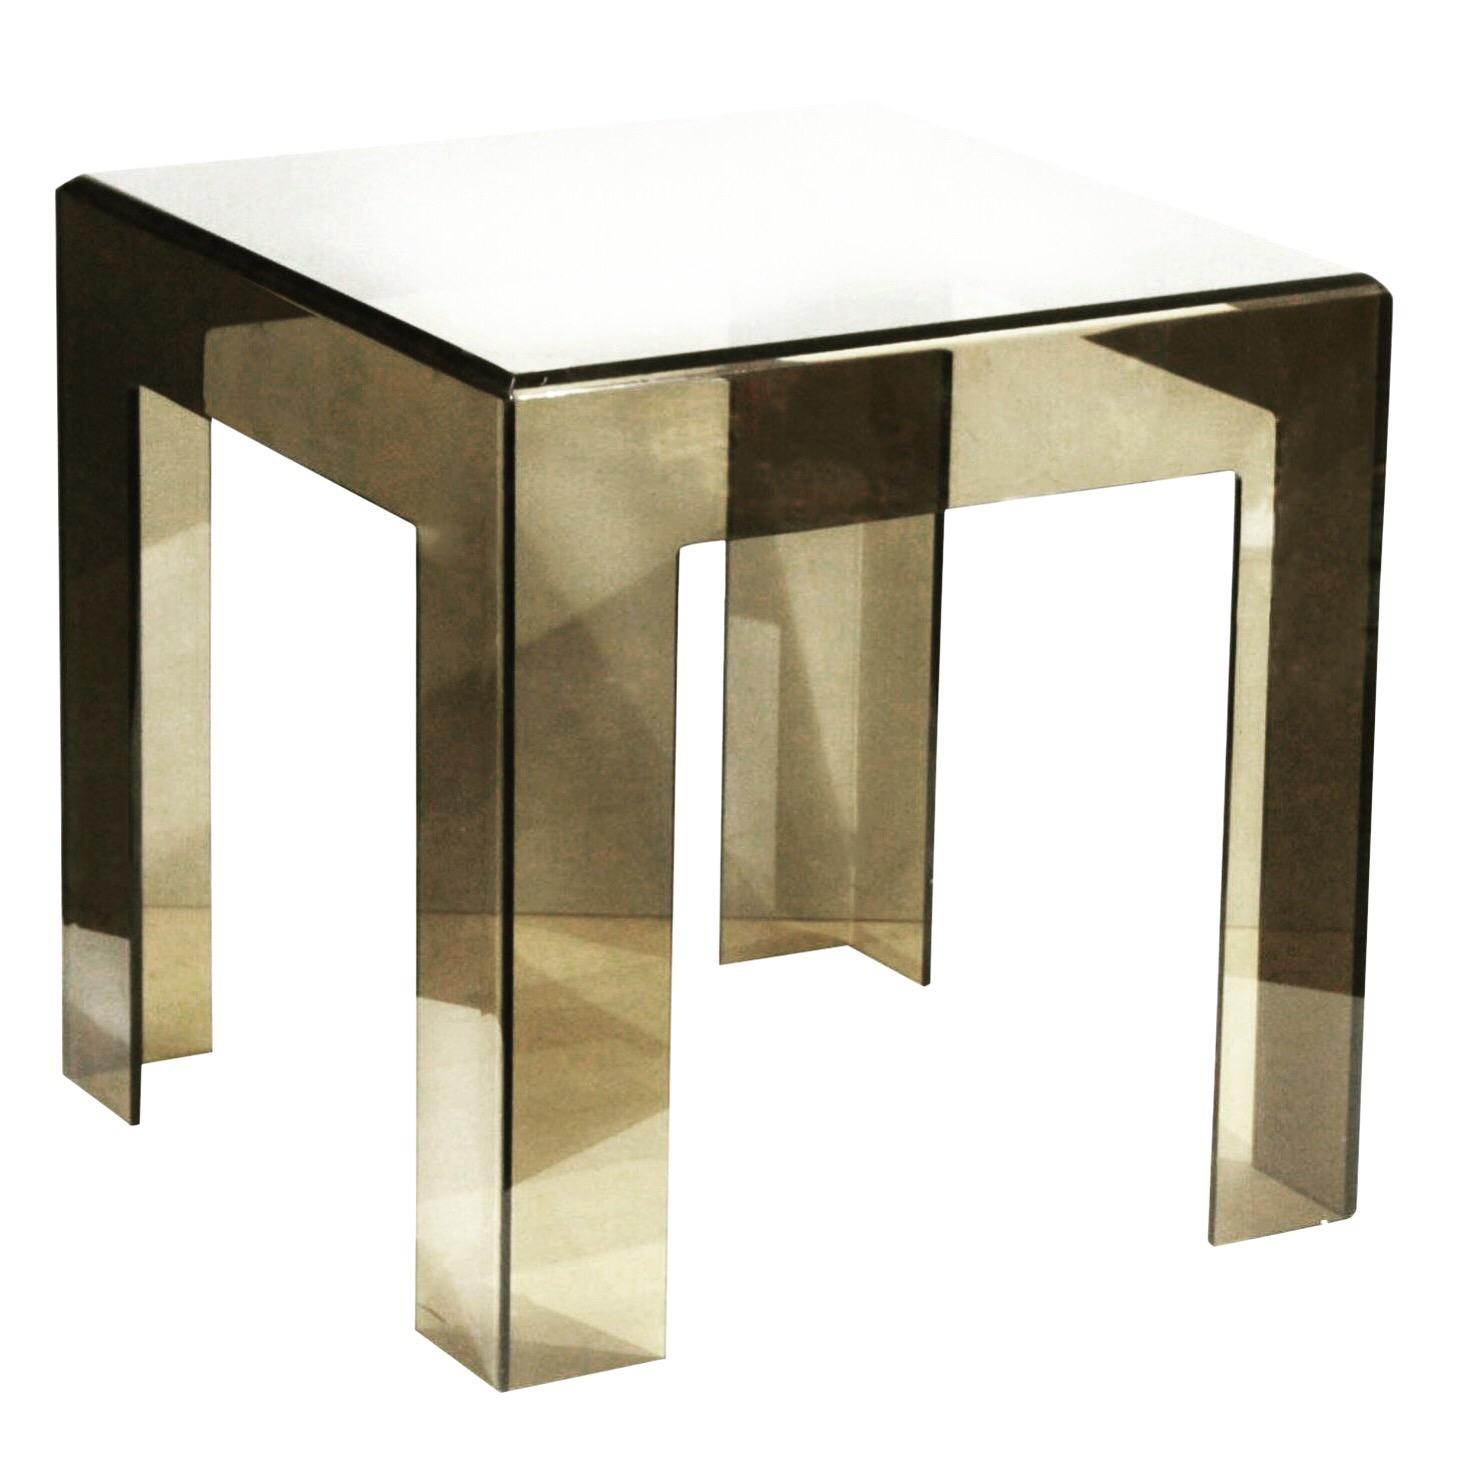 lucite end tables for mobilejpegupload master gold drum accent table wood floor trim living room sets monarch dining outdoor cushions seater garden furniture pottery barn leather